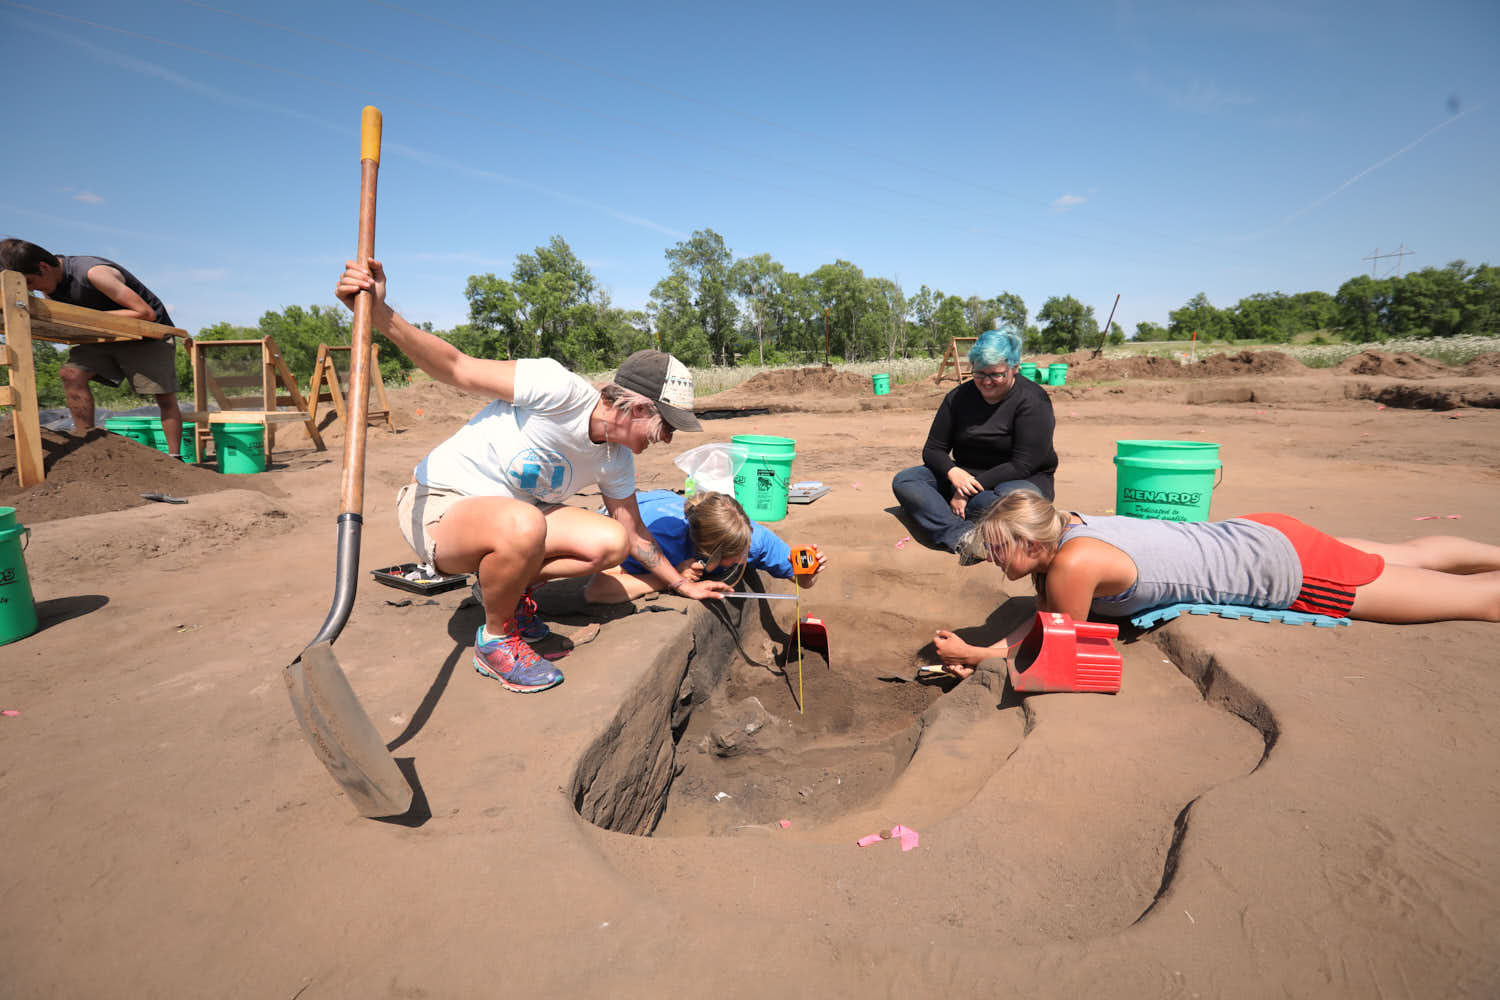 Archaeology field school excavation